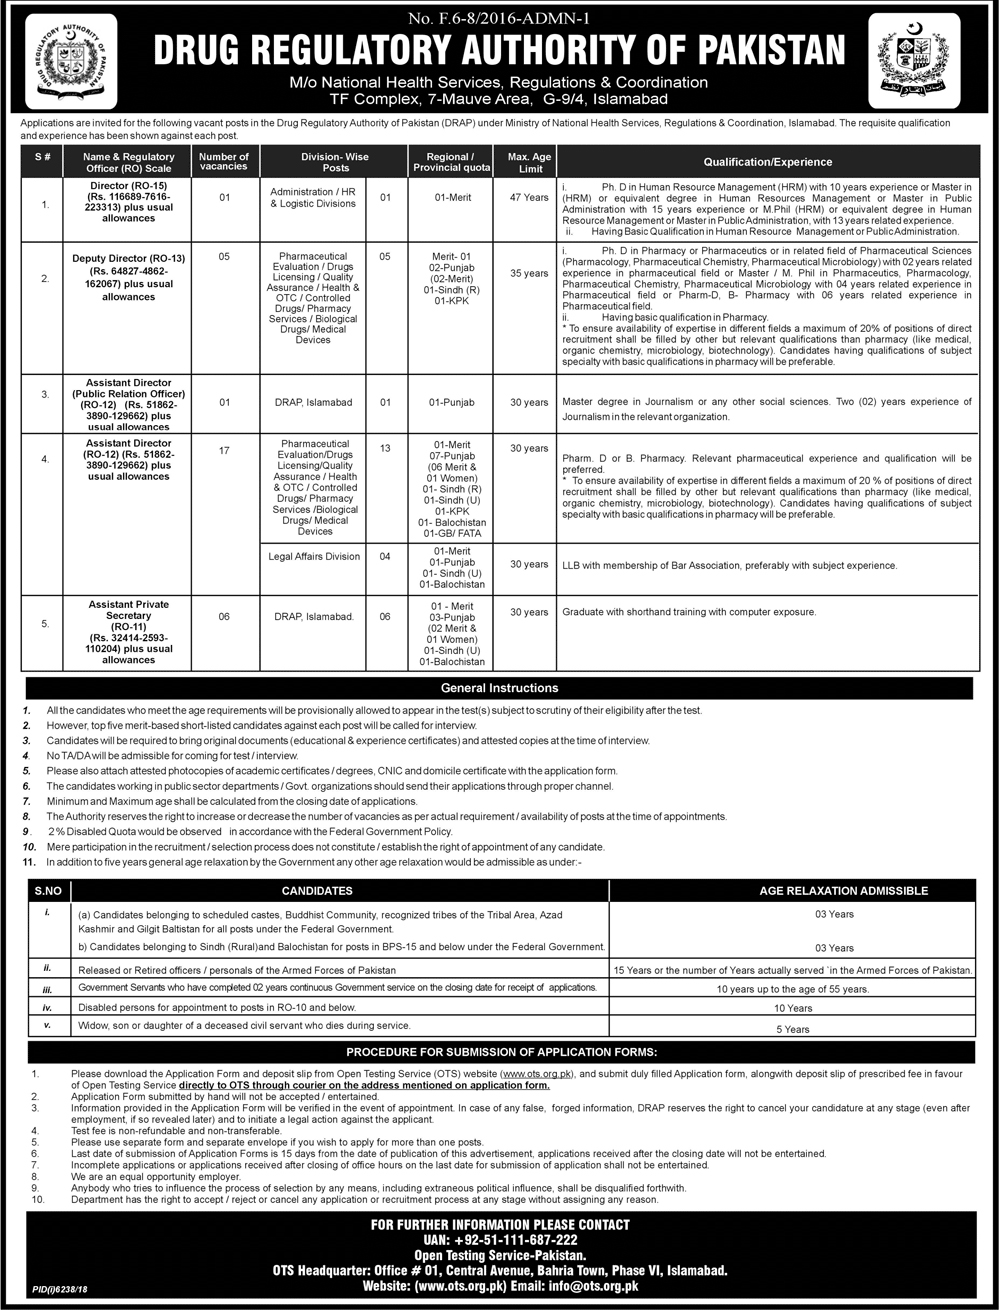 ➨ #Jobs - #Career_Opportunities - #Jobs - Drugs Regulatory Authority of Pakistan Islamabad (30 Posts) - Apply within 15 Days